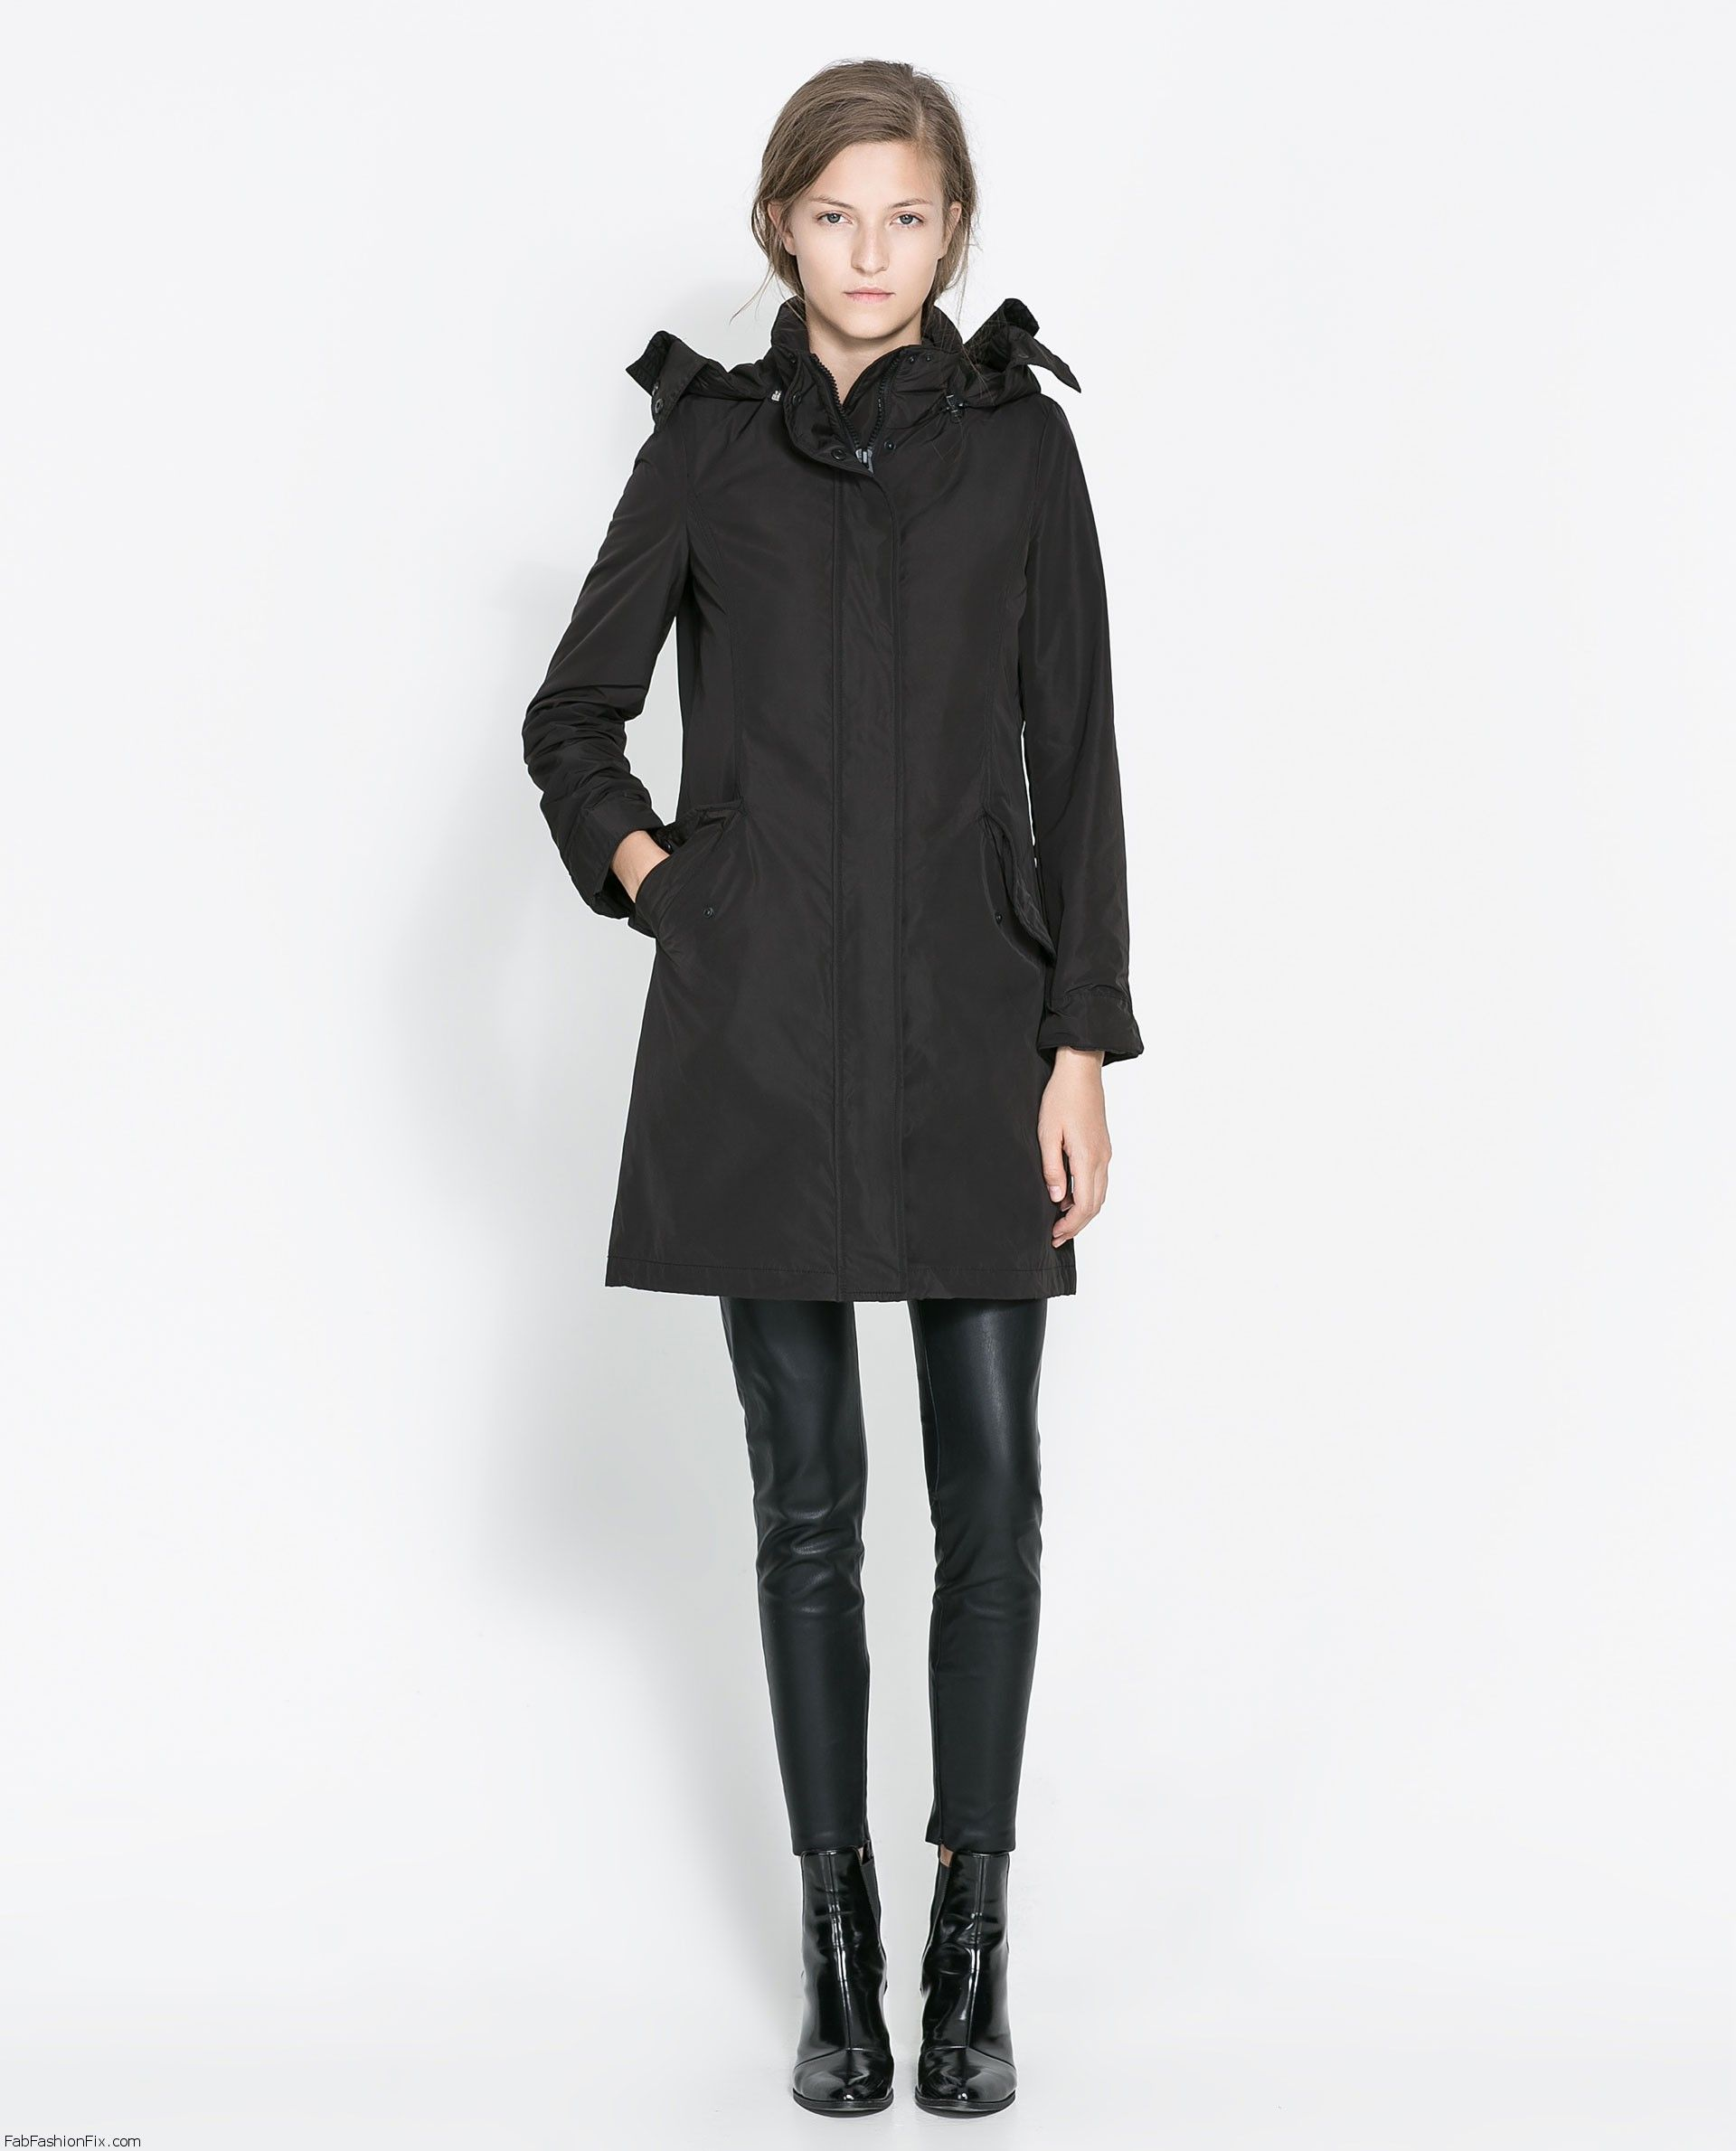 a6c42c9d ZARA coats & jackets for fall/winter 2013 | Fab Fashion Fix